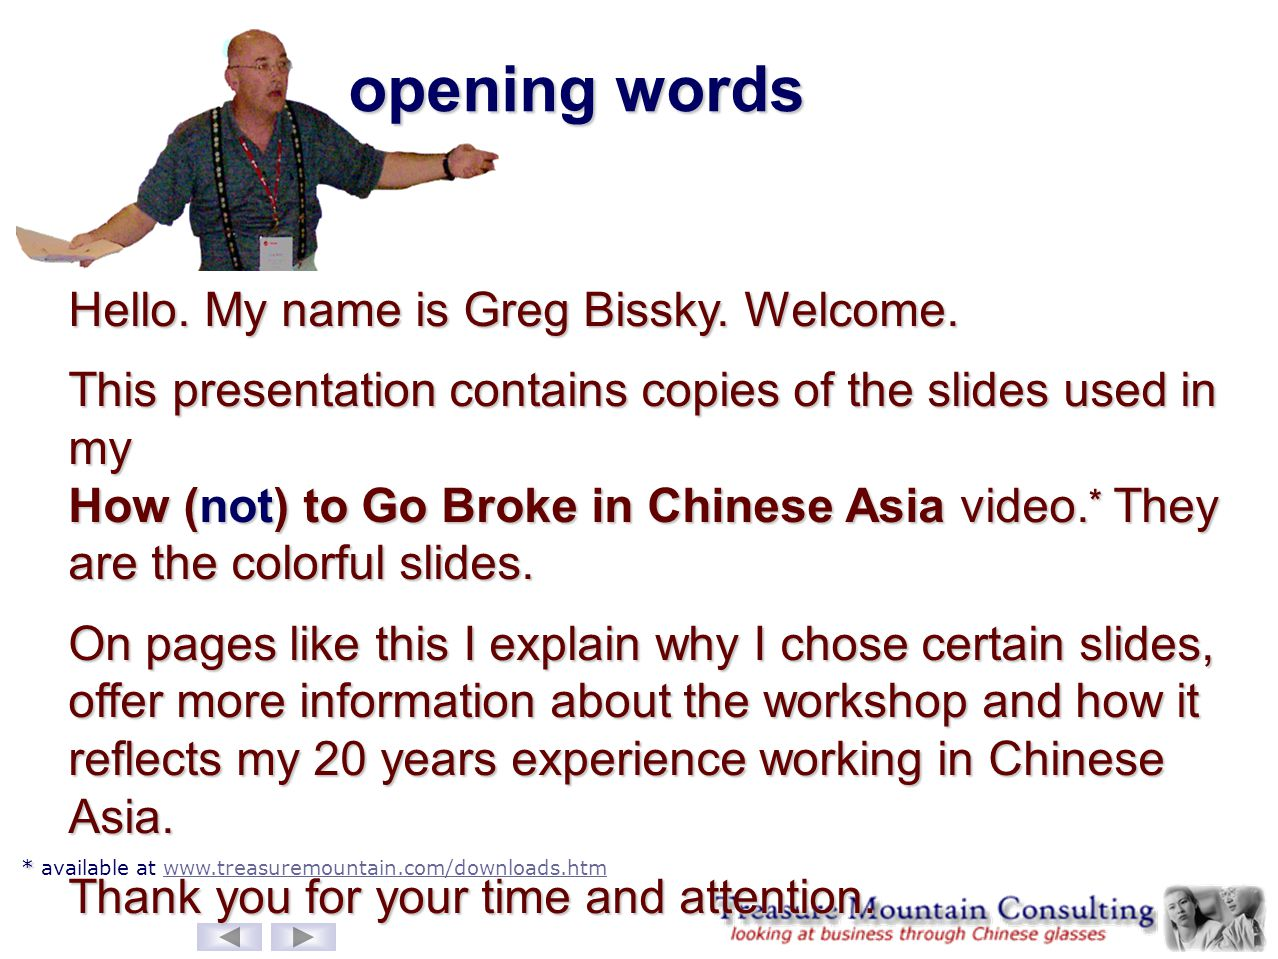 opening words Hello. My name is Greg Bissky. Welcome. This presentation contains copies of the slides used in my How (not) to Go Broke in Chinese Asia